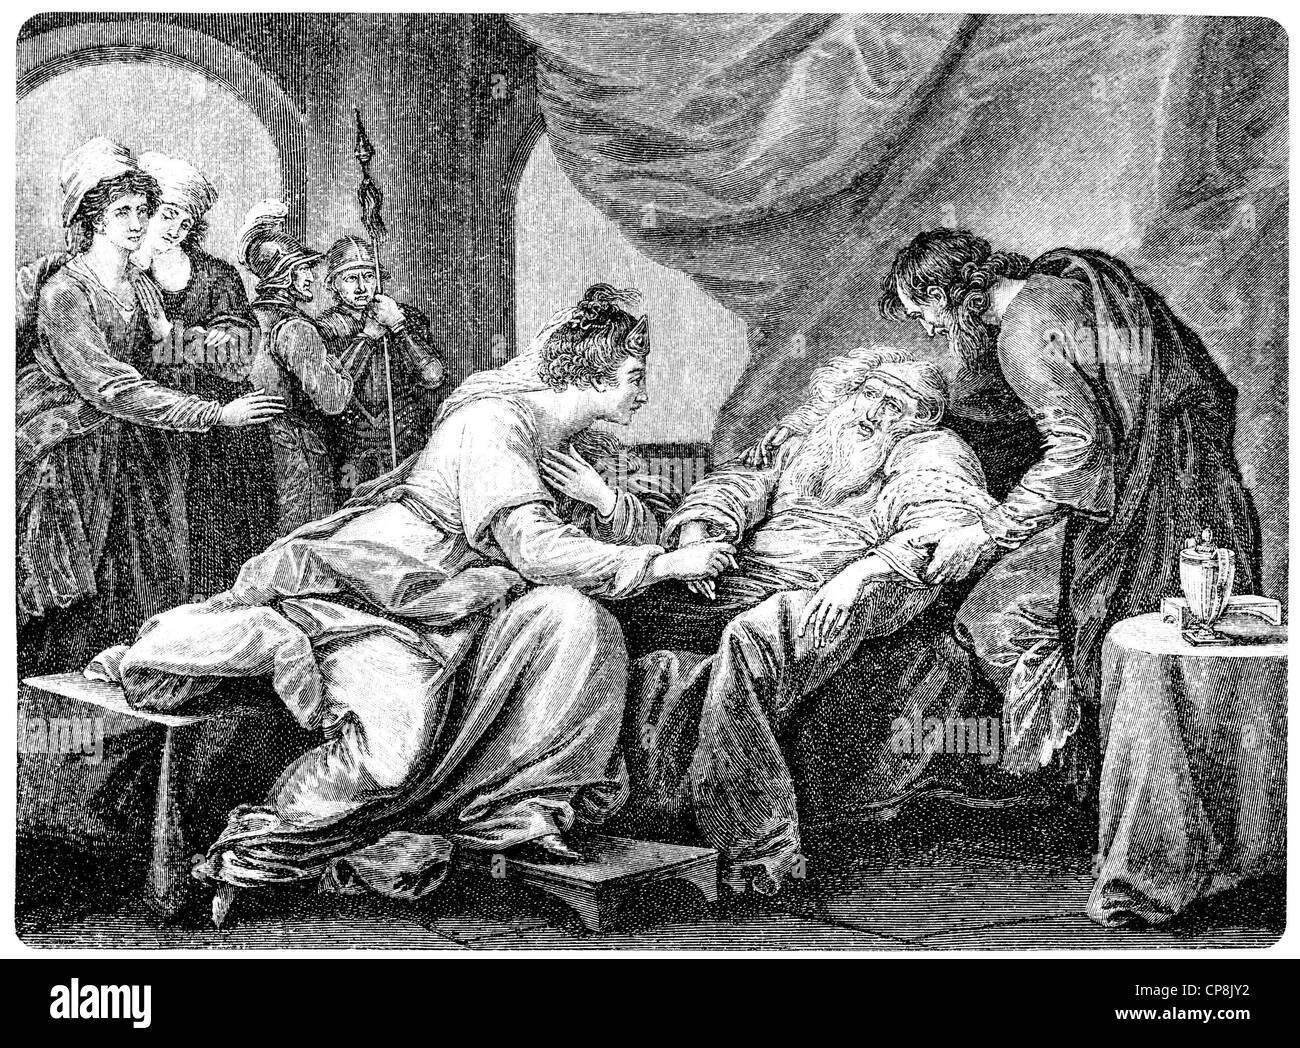 King Lear and his daughter Cordelia, after the tragedy by William Shakespeare, 1564 - 1616, an English playwright, Stock Photo